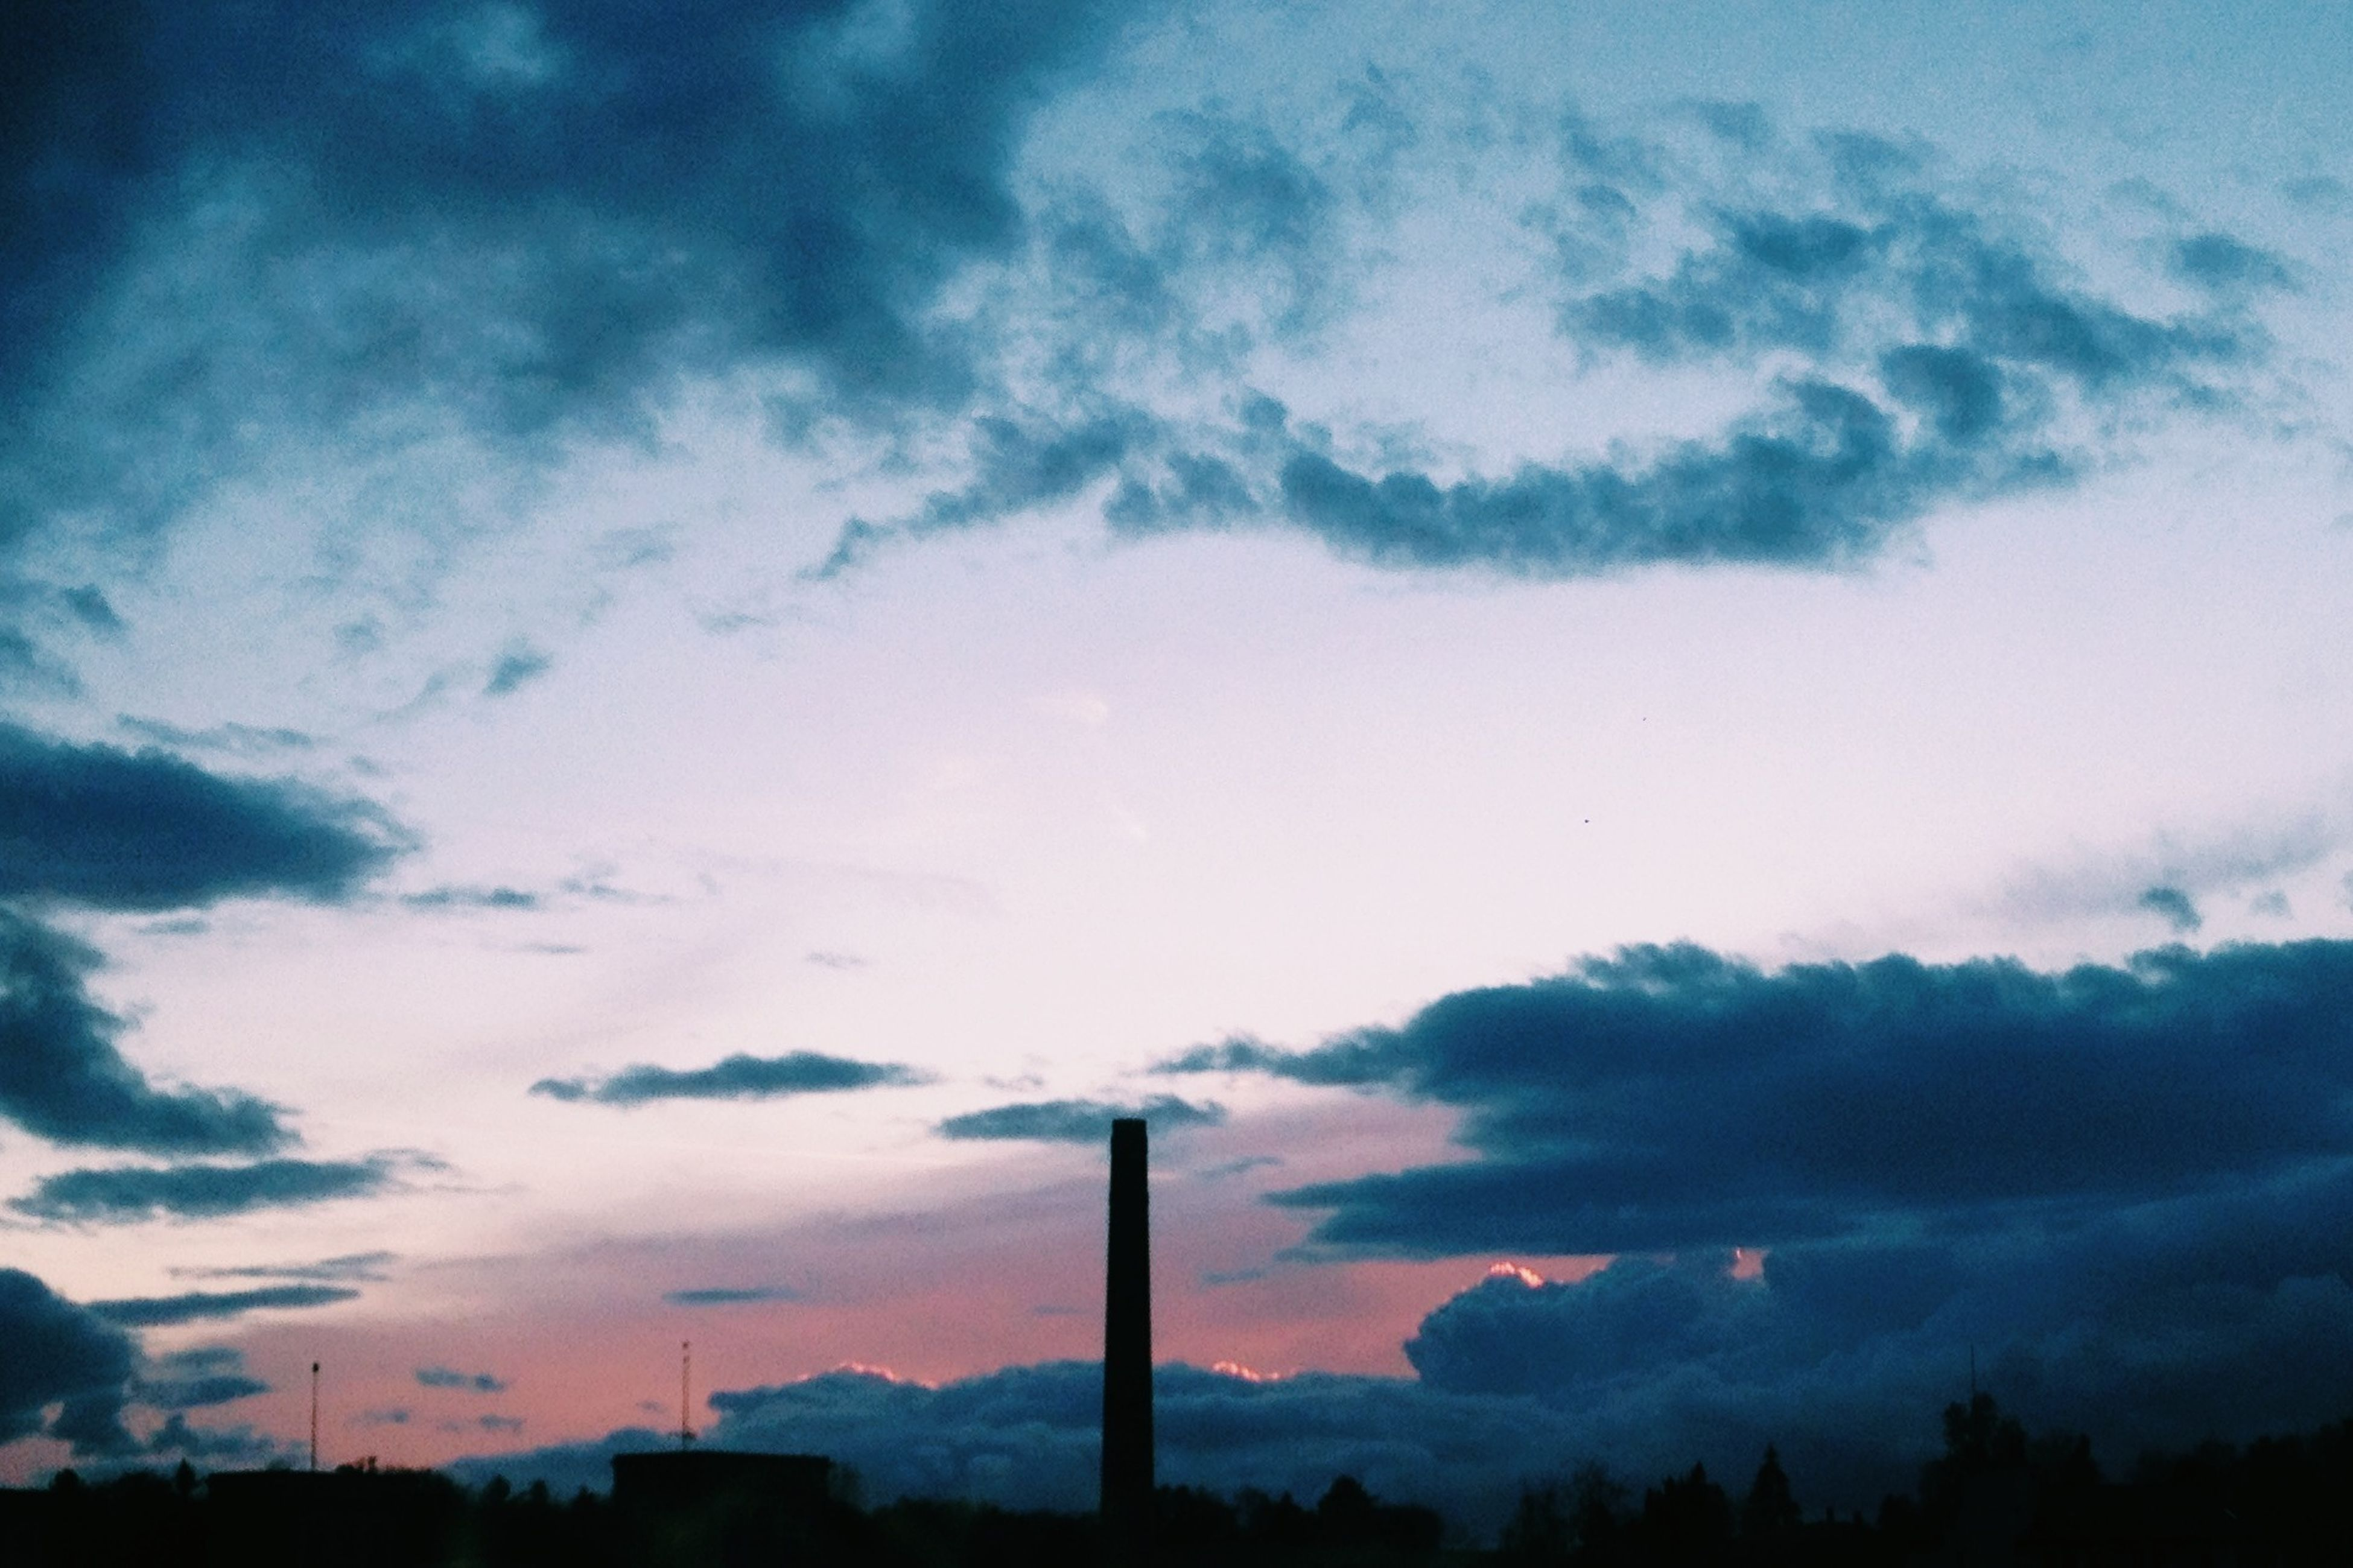 sky, silhouette, low angle view, cloud - sky, cloudy, cloud, sunset, beauty in nature, nature, tranquility, street light, built structure, scenics, electricity pylon, dusk, outdoors, no people, pole, tranquil scene, fuel and power generation